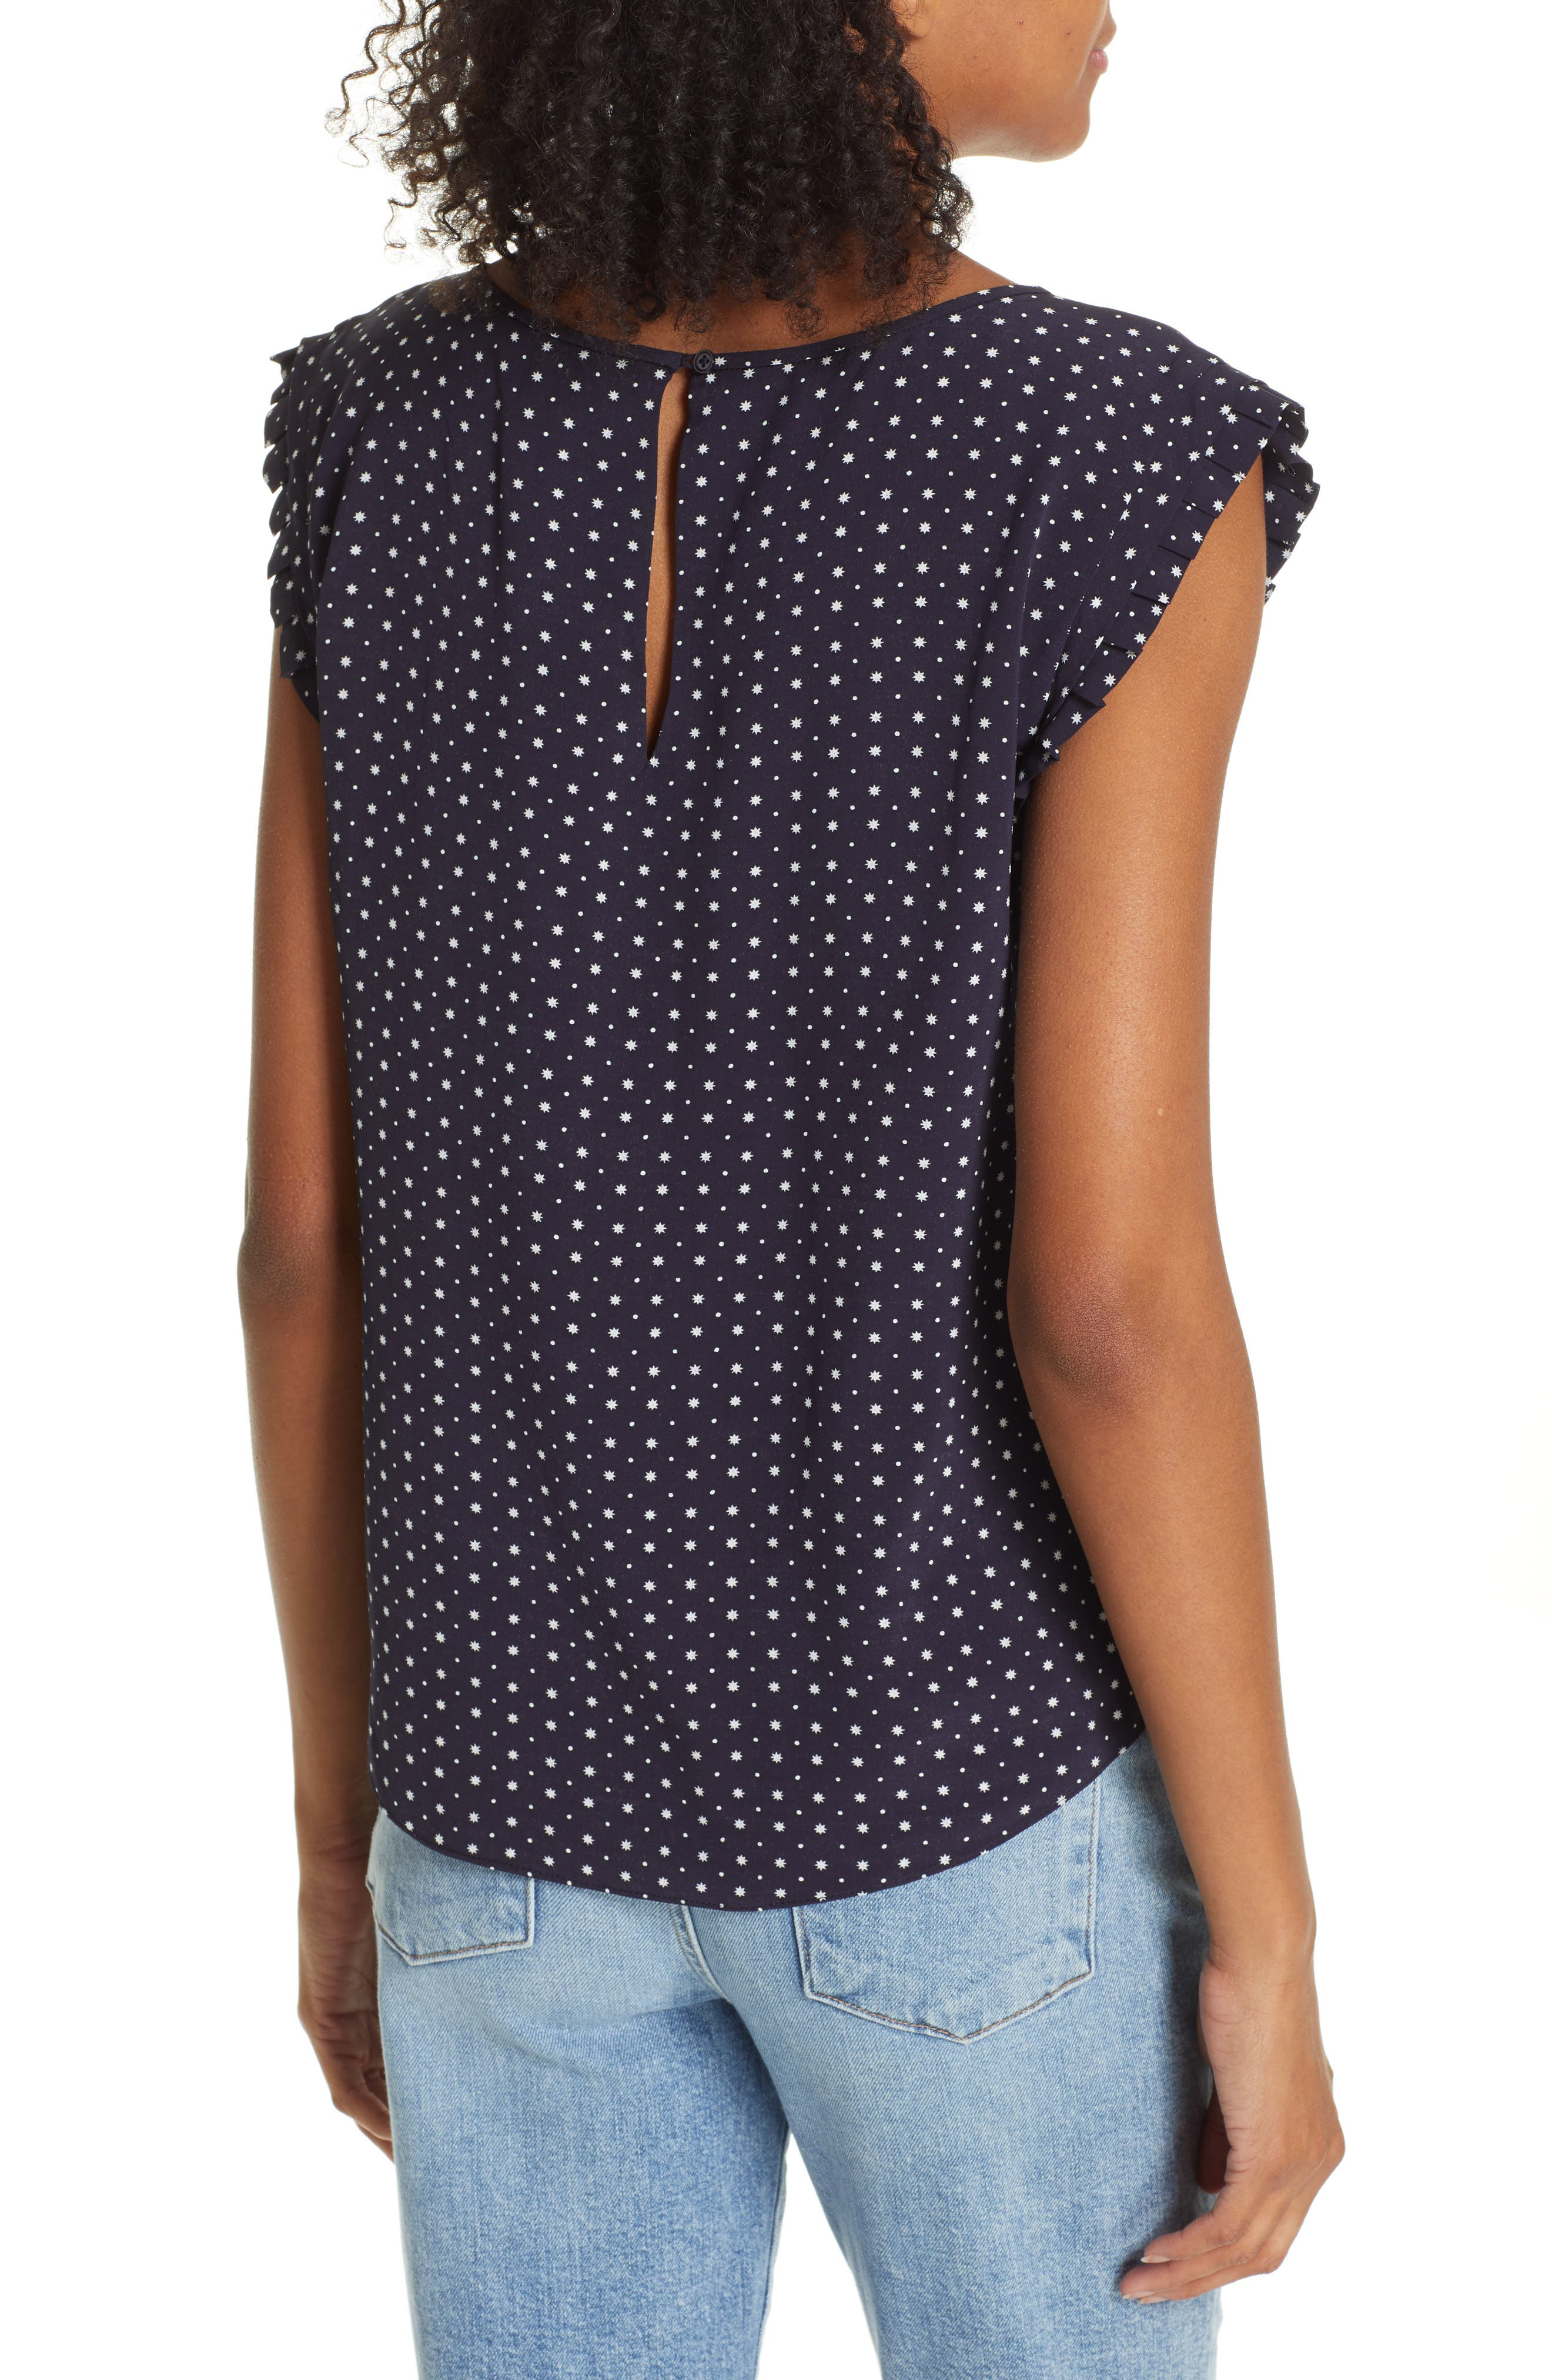 JOIE, Laurelle Print Woven Top, Alternate thumbnail 2, color, 410